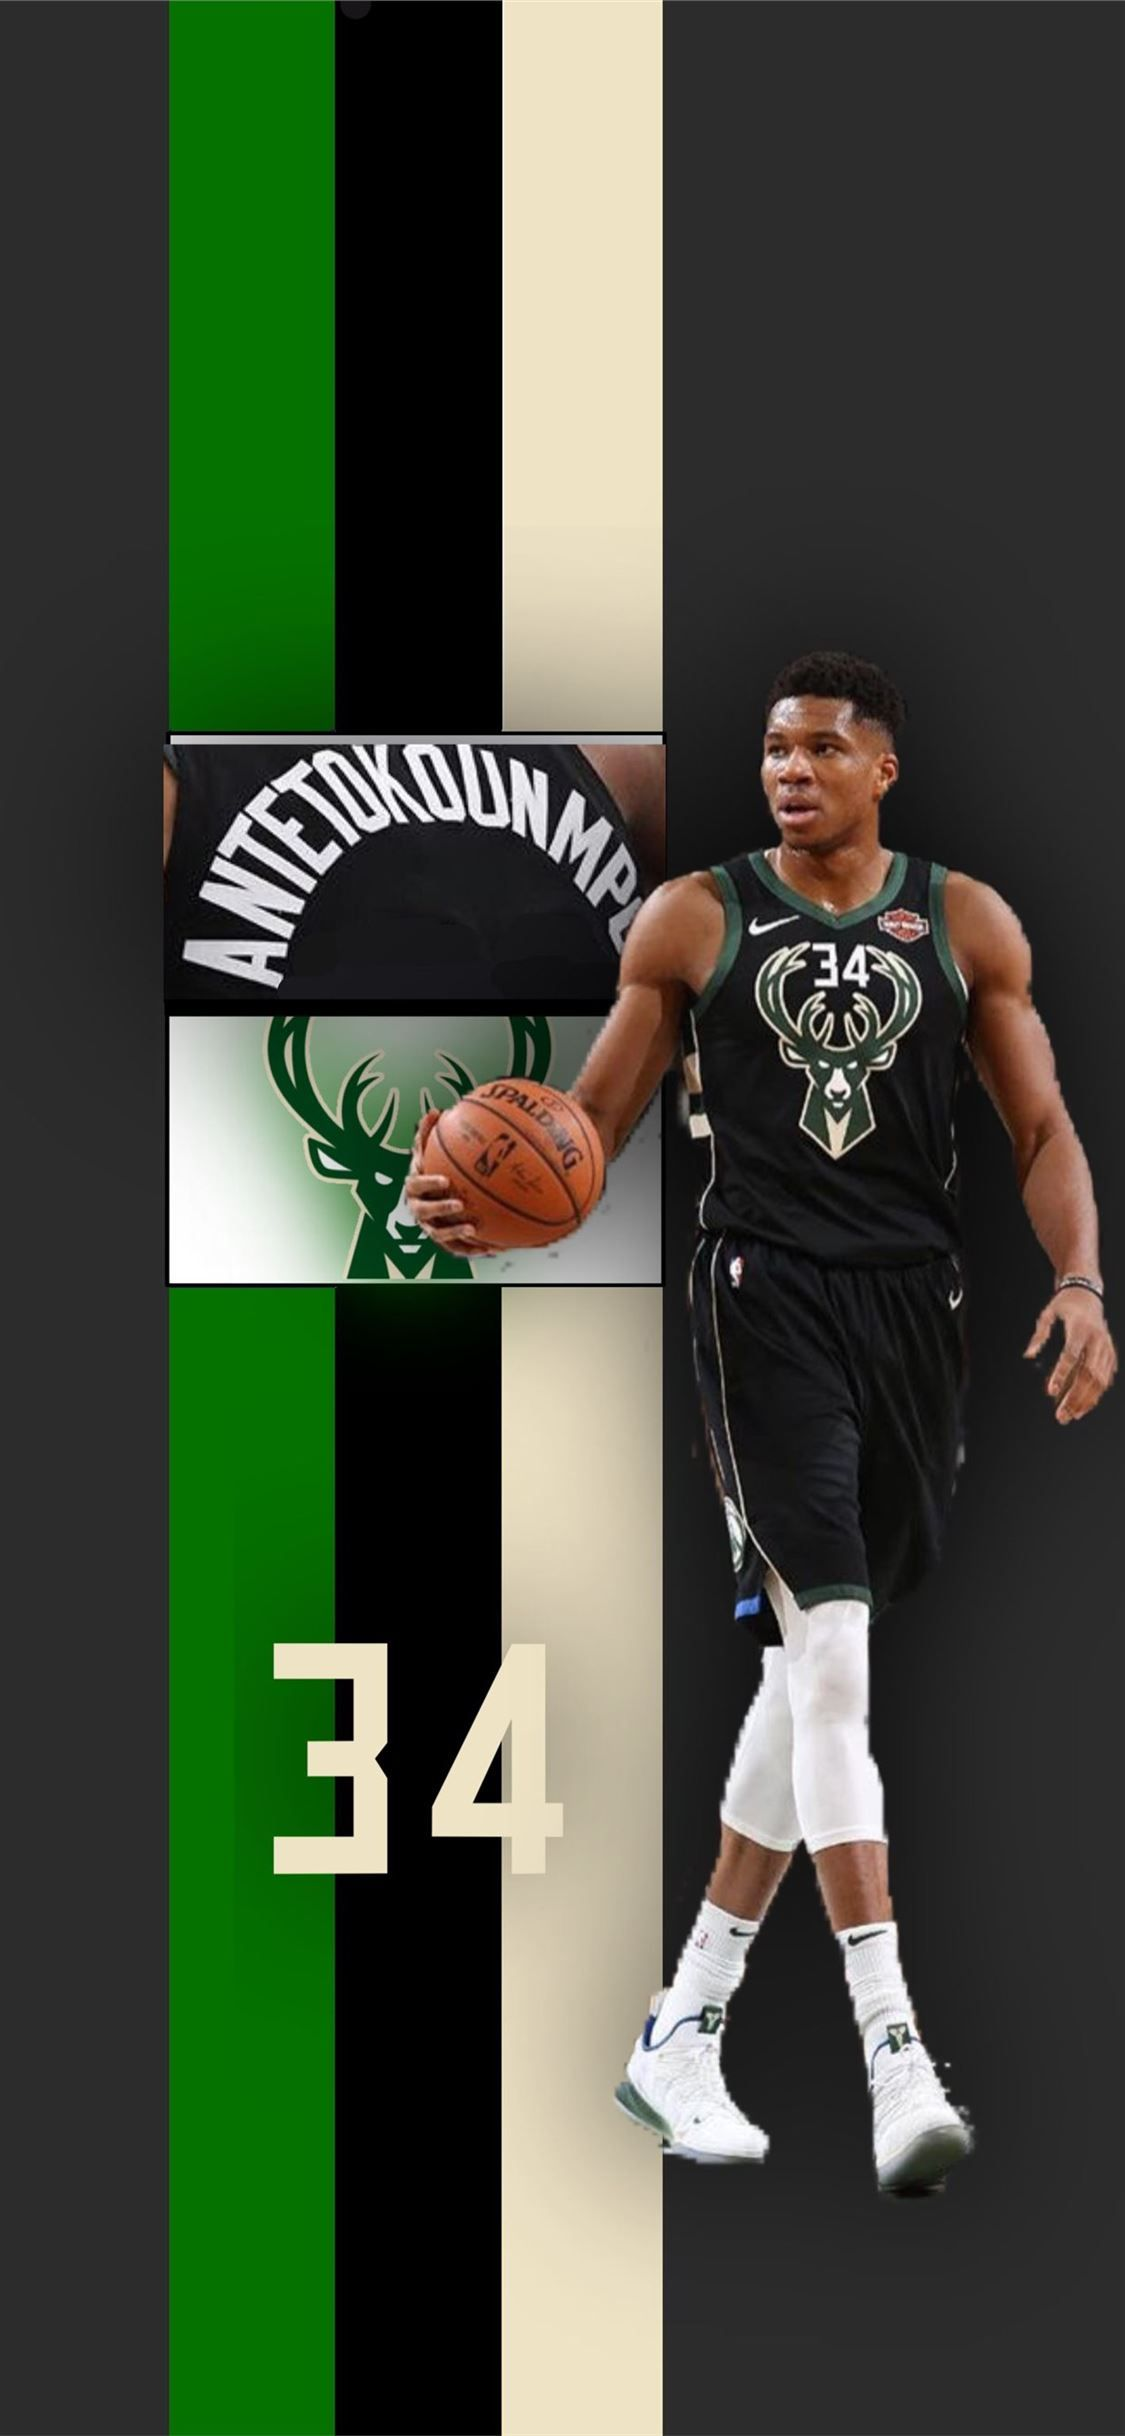 Giannis Antetokounmpo iPhone 8 Wallpapers - Wallpaper Cave